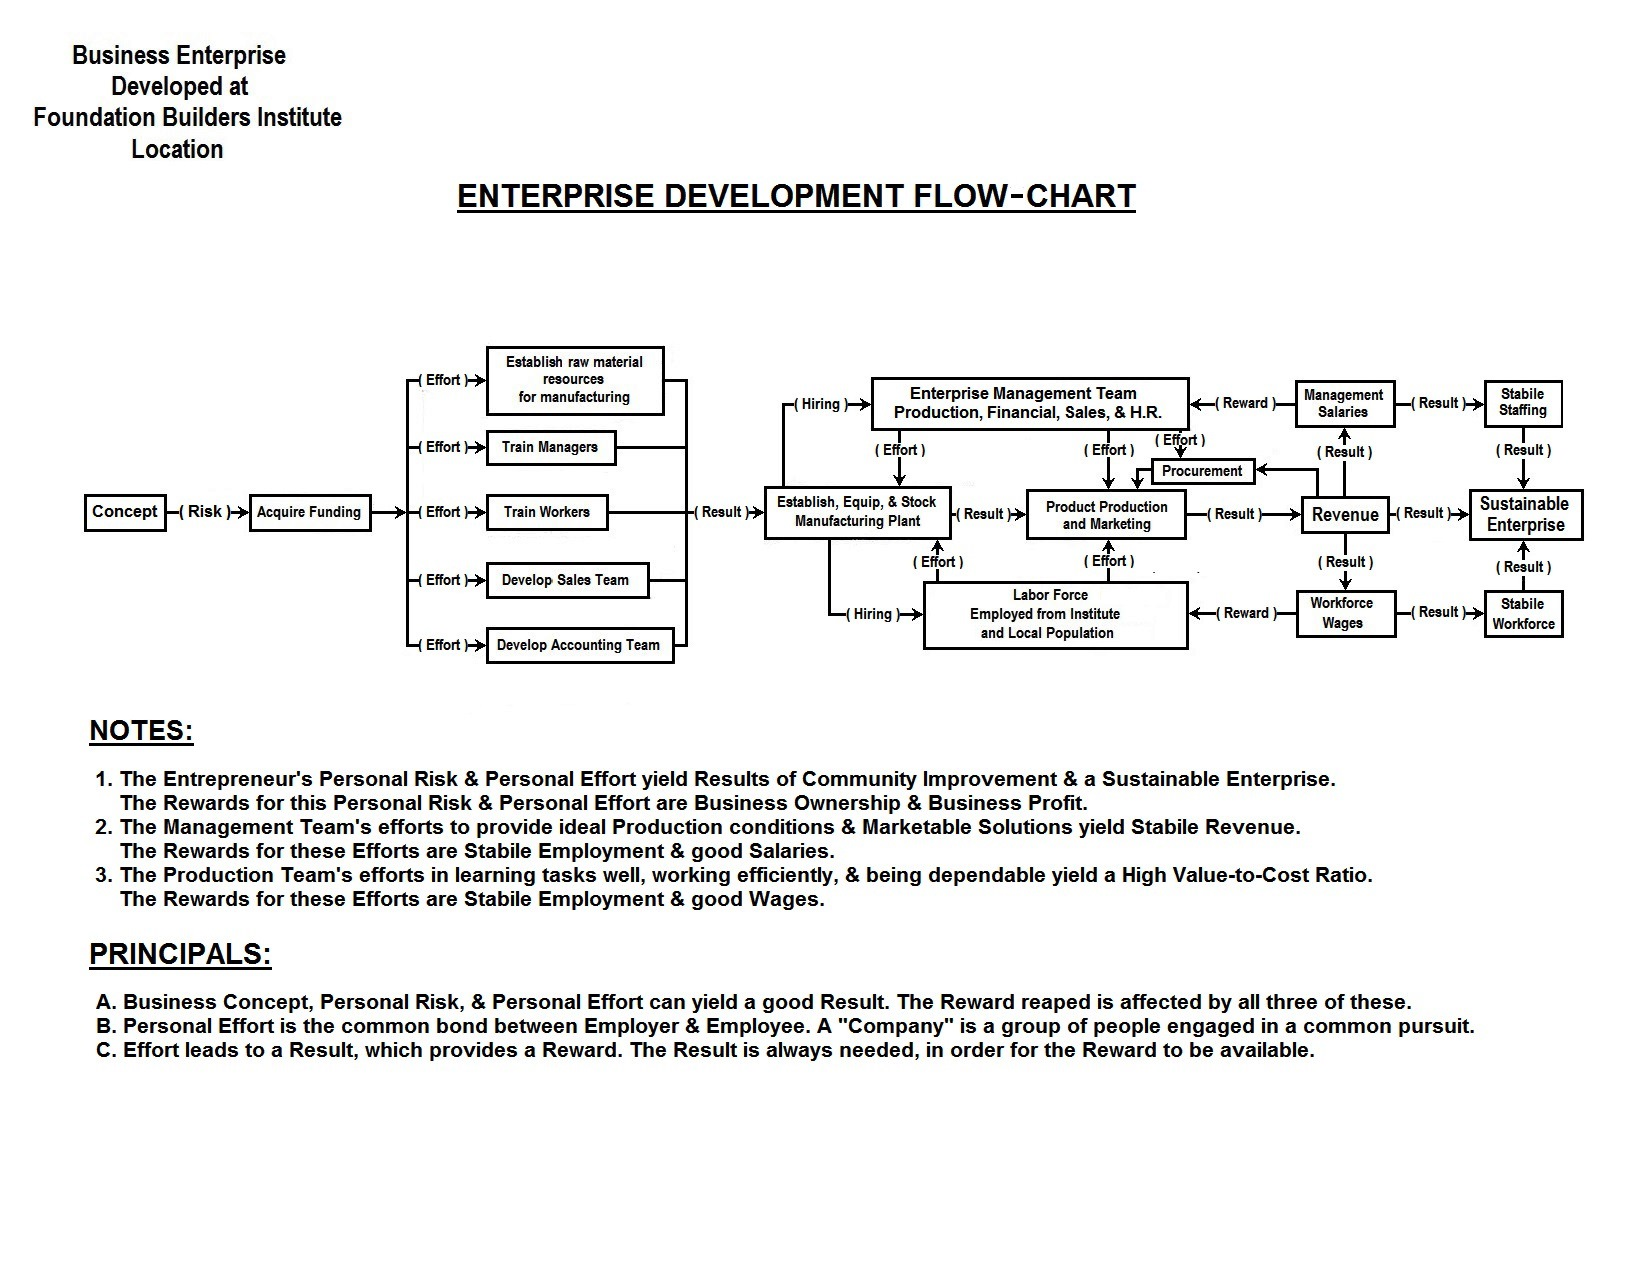 Flow Chart Enterprise Development<p><span class='ddmg-button ddmg-xxlarge ddmg-black ddmg-padding-large ddmg-display-topright' title='Close Modal Image'><i class='fa fa-close'></i></span></p>